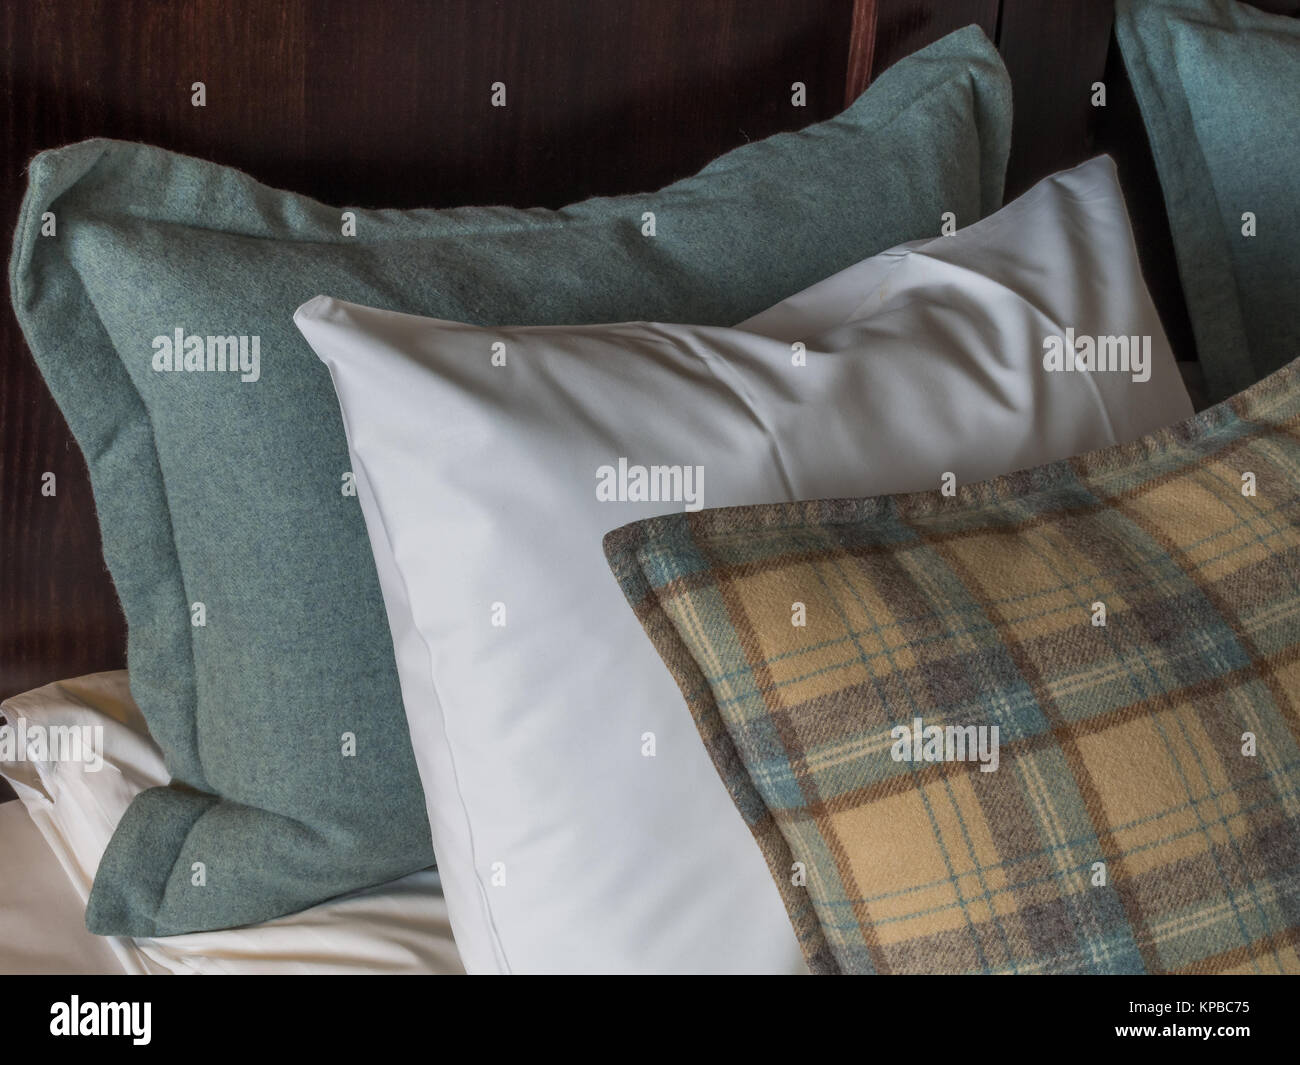 Pillows arranged on a hotel bed - Stock Image